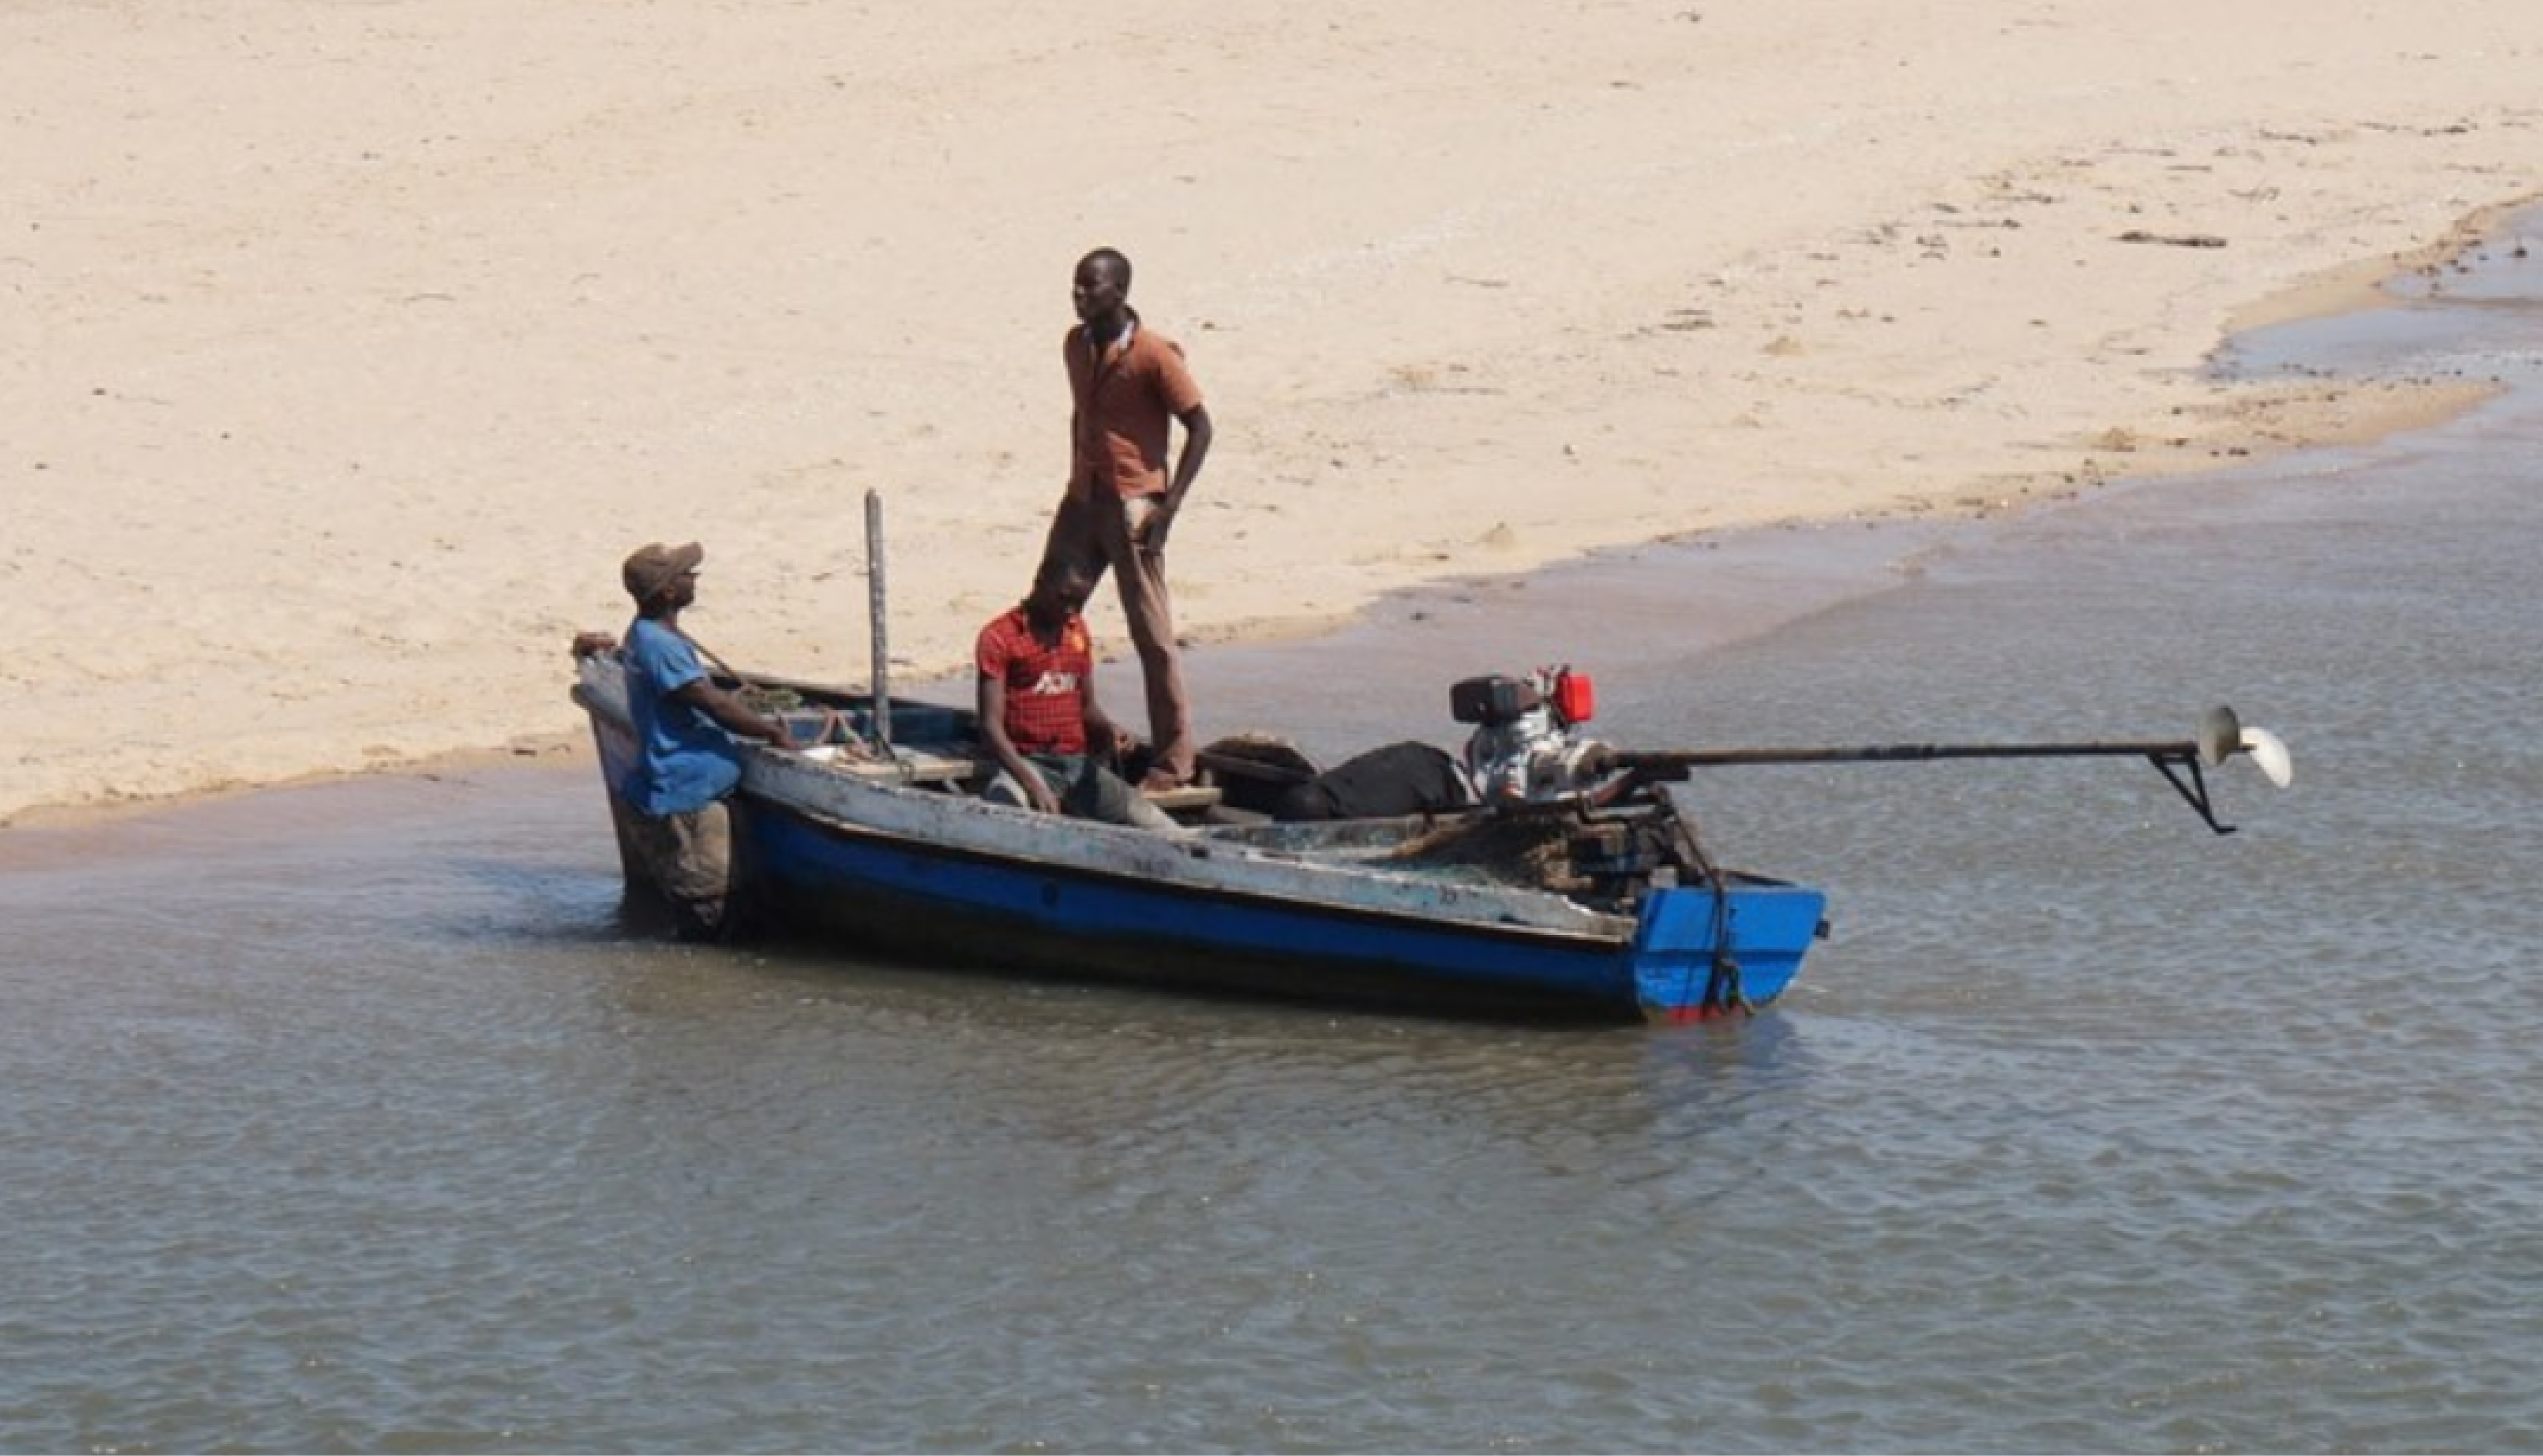 SUSTAIN: Collection and Study of Baseline Data in Mozambique